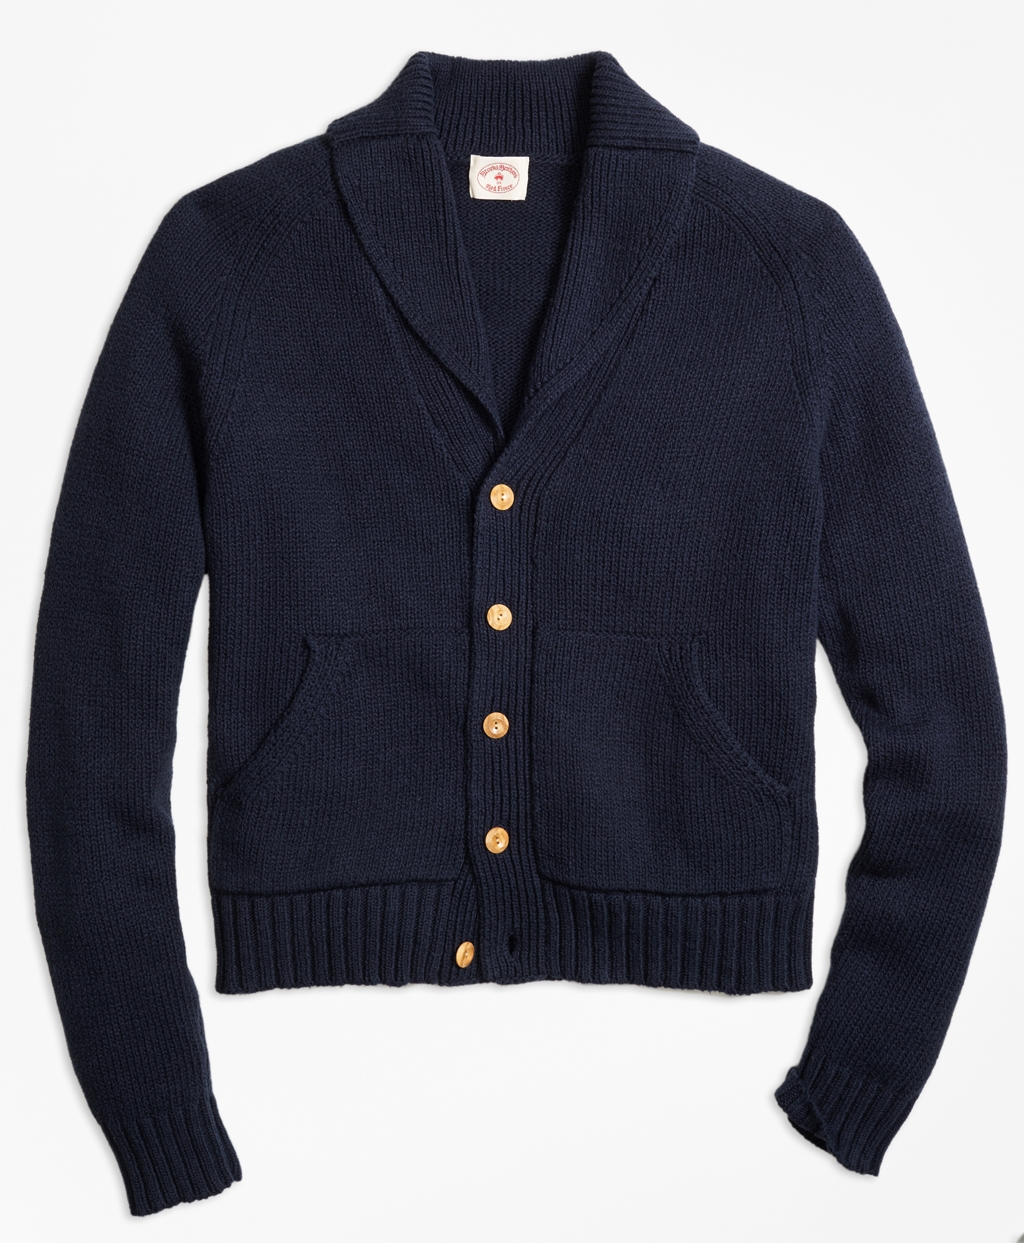 Men's Vintage Style Clothing Brooks Brothers Mens Shawl Collar Cardigan $128.00 AT vintagedancer.com